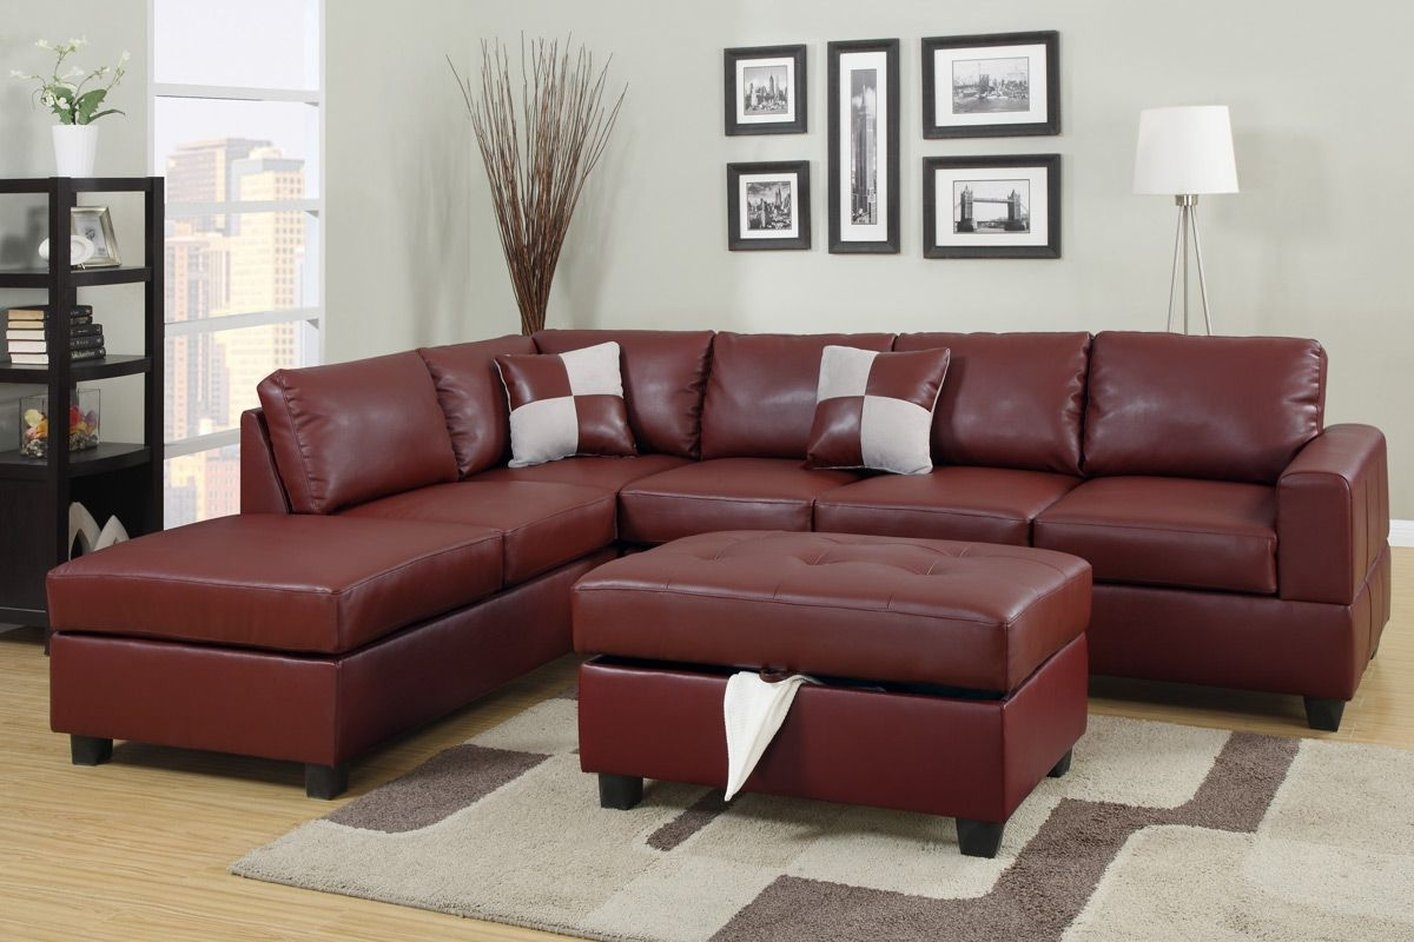 10 Photos Red Leather Sectional Couches Sofa Ideas